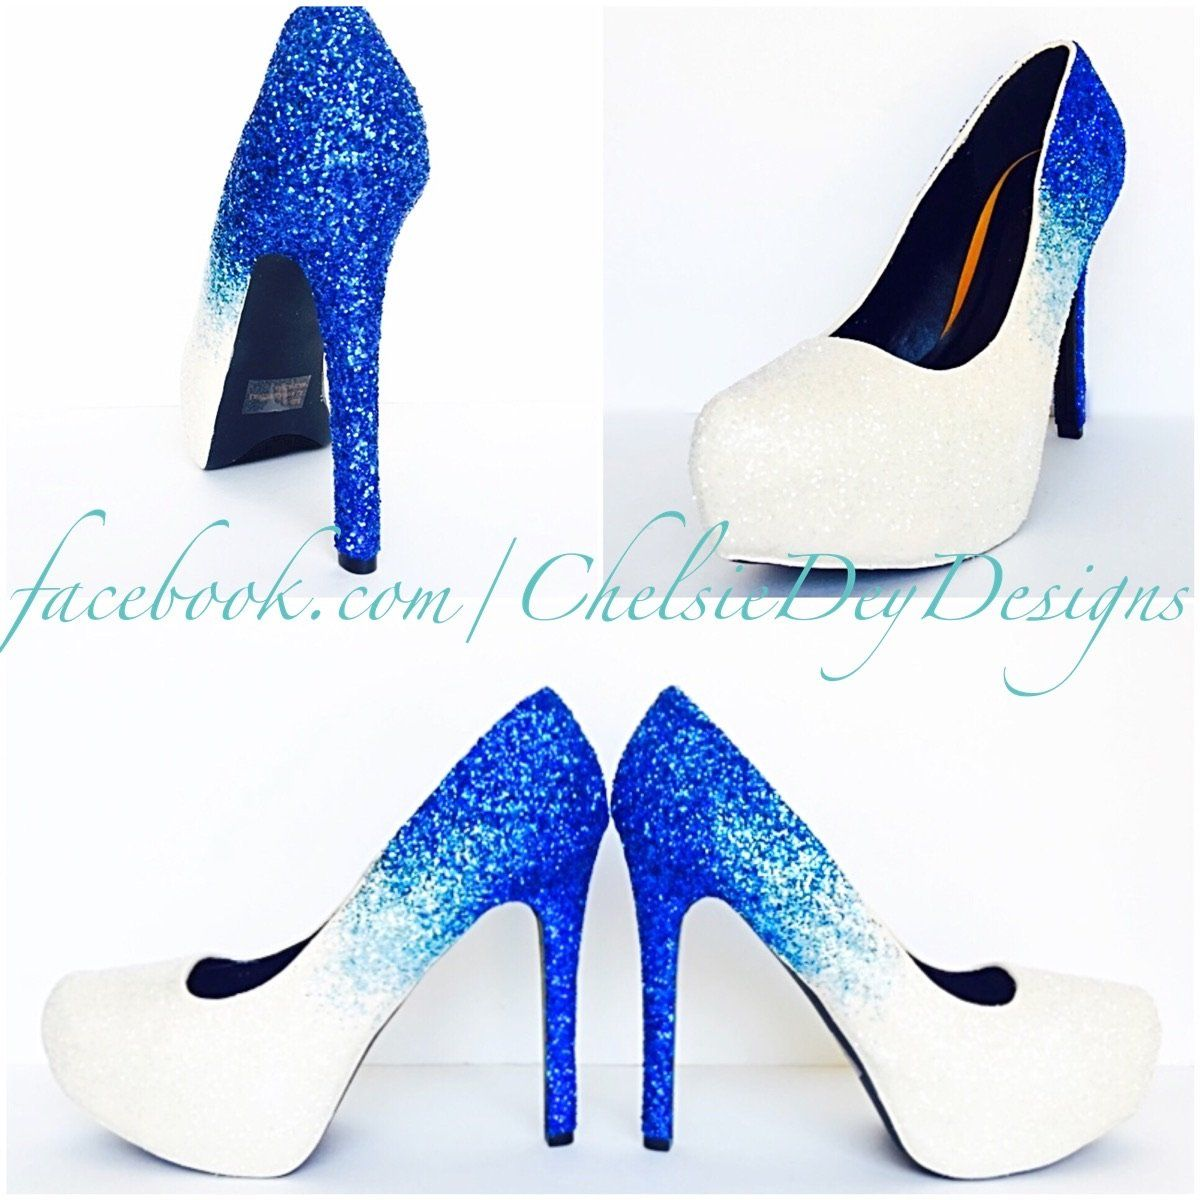 e90a4b3e4c Aqua Ombre Glitter High Heels, Something Blue White Wedding Shoes, Sparkly  Royal Blue Pumps